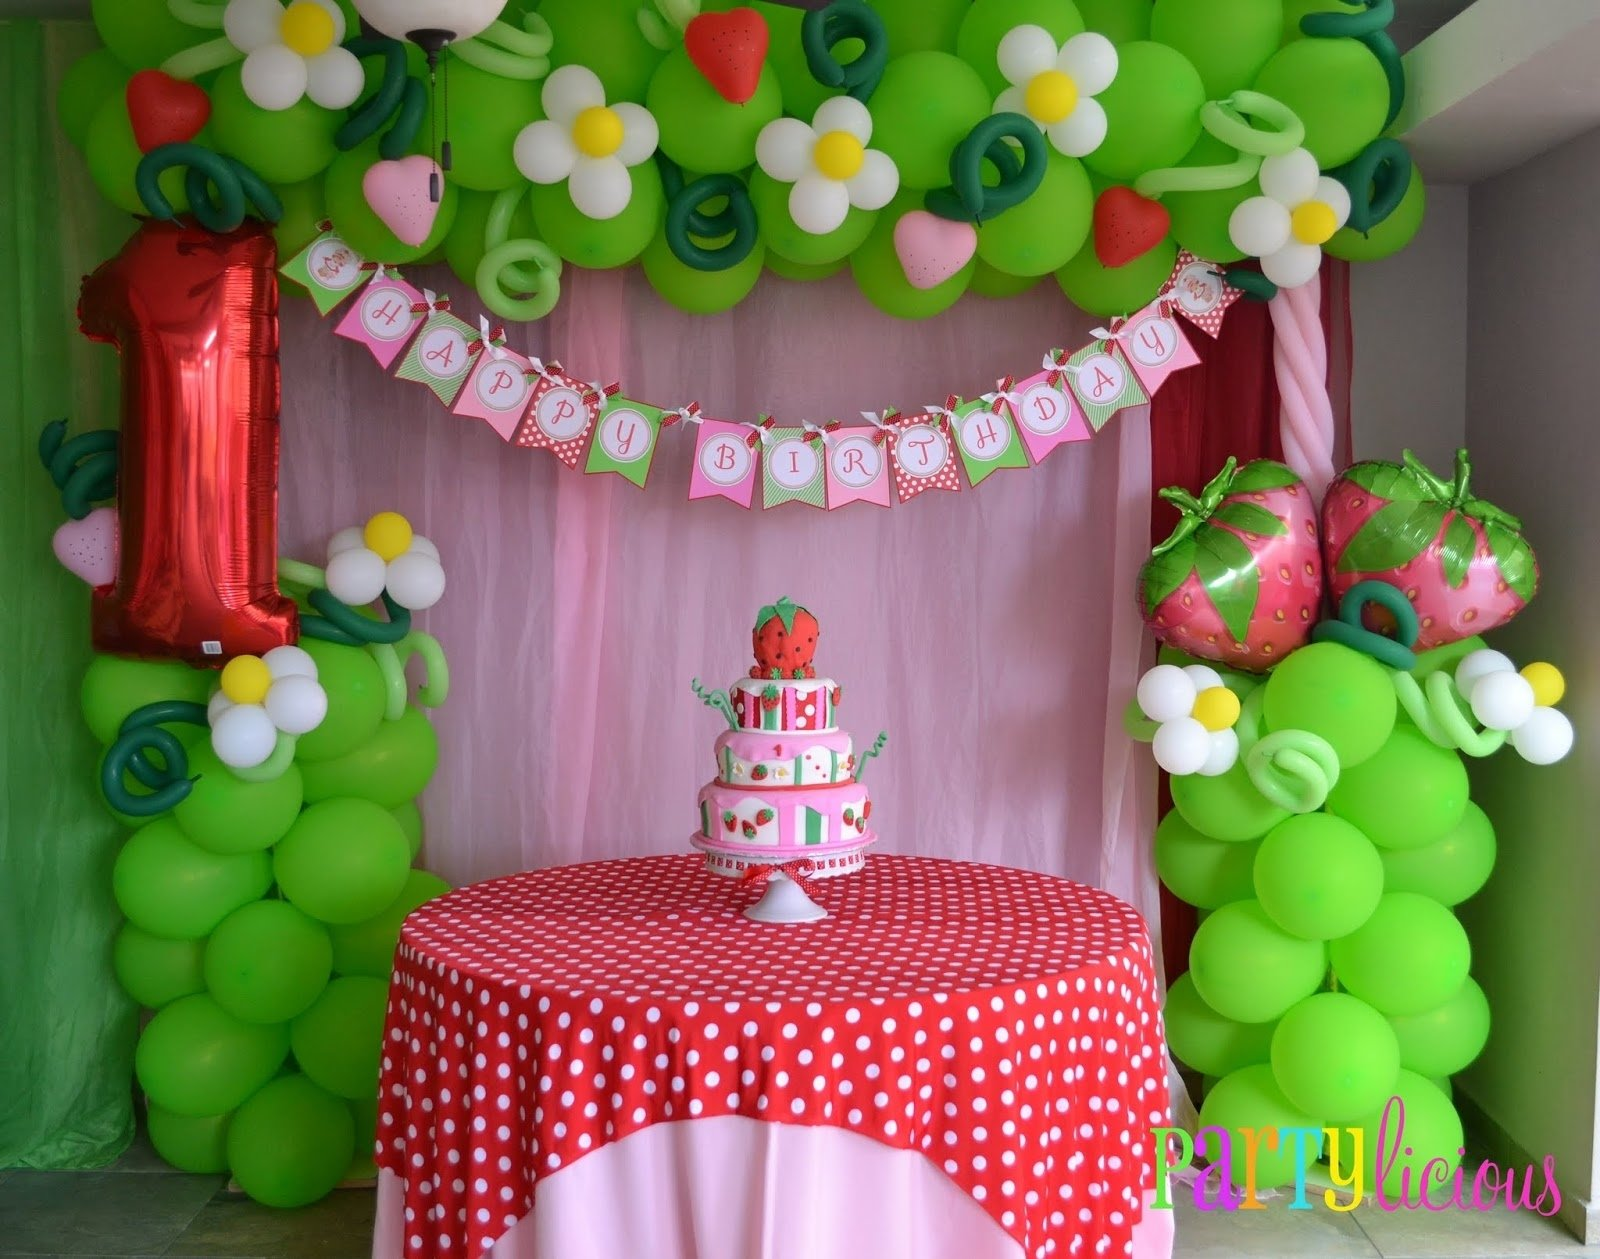 10 Attractive Strawberry Shortcake Birthday Party Ideas balloon idea minus the 1 vintage strawberry shortcake birthday 2021